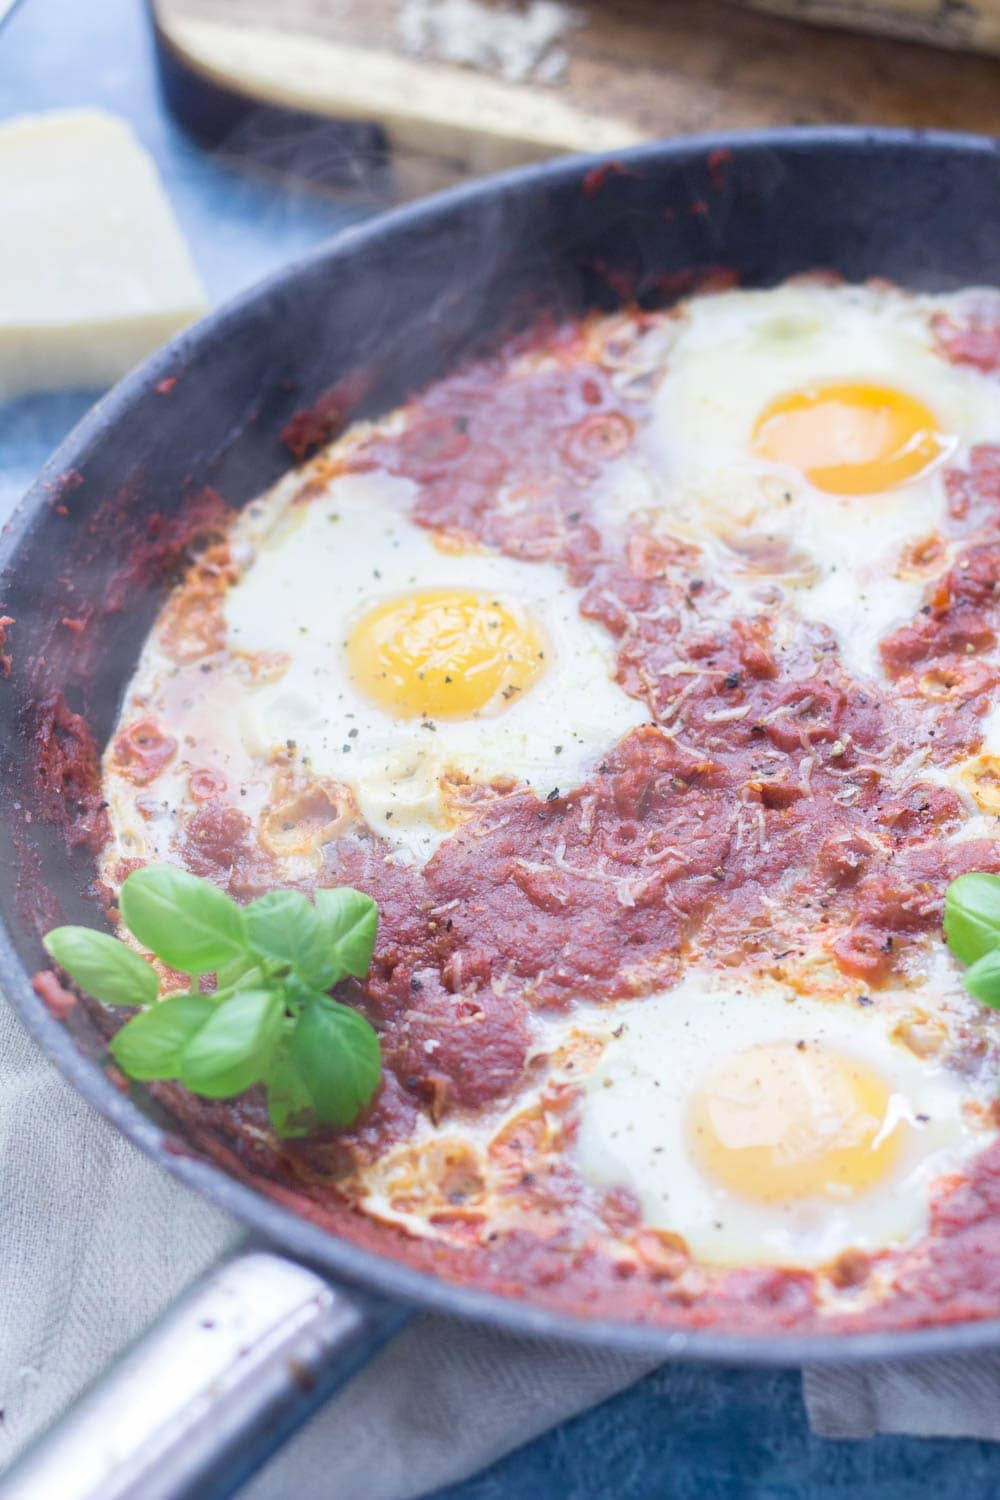 Serve up a hearty breakfast with this Italian shakshuka. Made with a delicious oregano tomato sauce and finished with a sprinkling of parmesan. #shakshuka #recipe #breakfast #brunch #italianfood